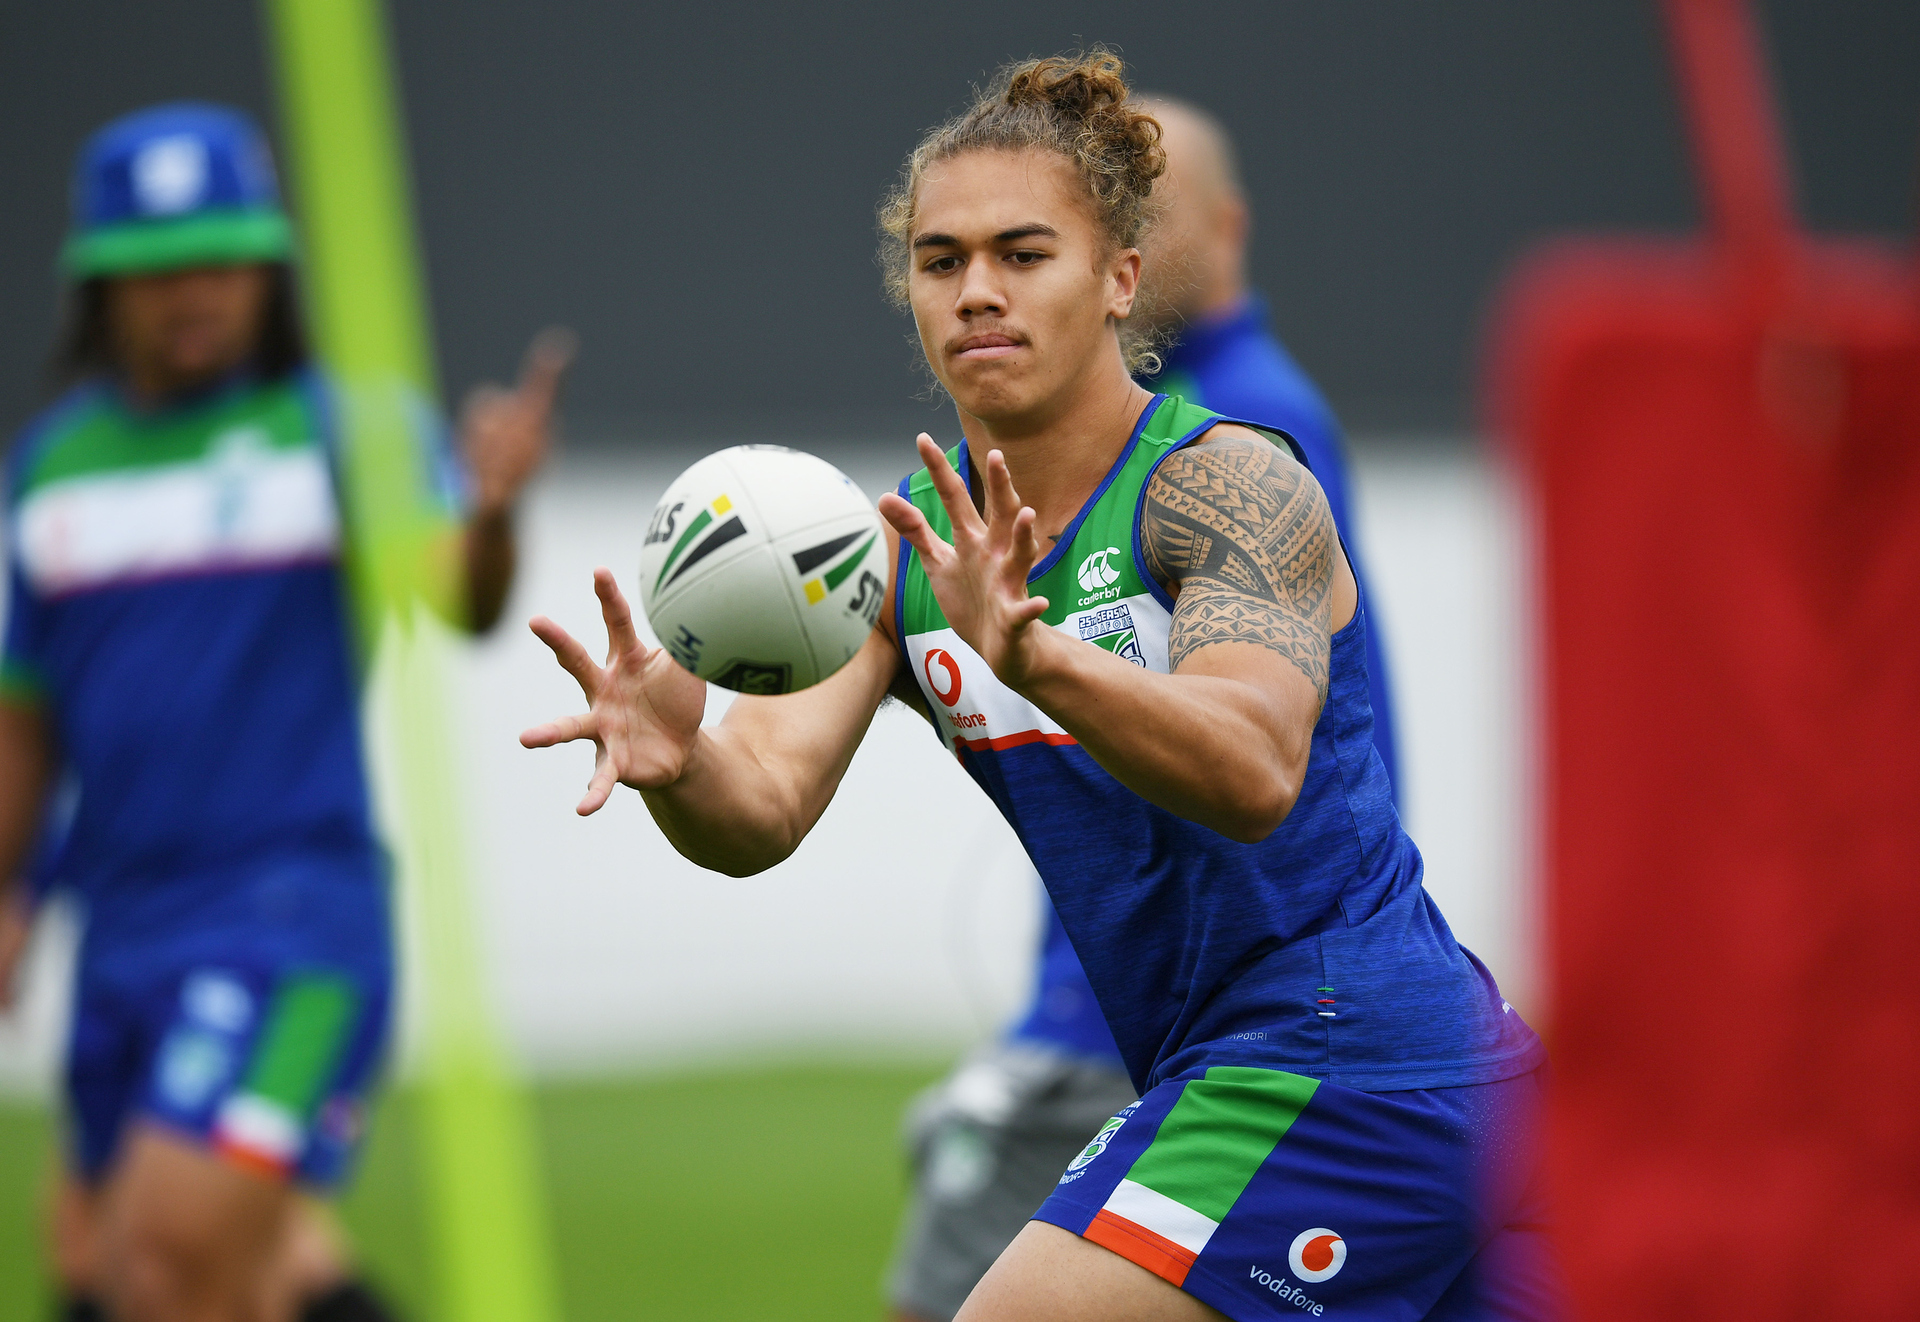 6dfc2c8a293 Rugby league  Chanel Harris-Tavita - The Warriors teenager hoping to follow  in Shaun Johnson s footsteps - NZ Herald